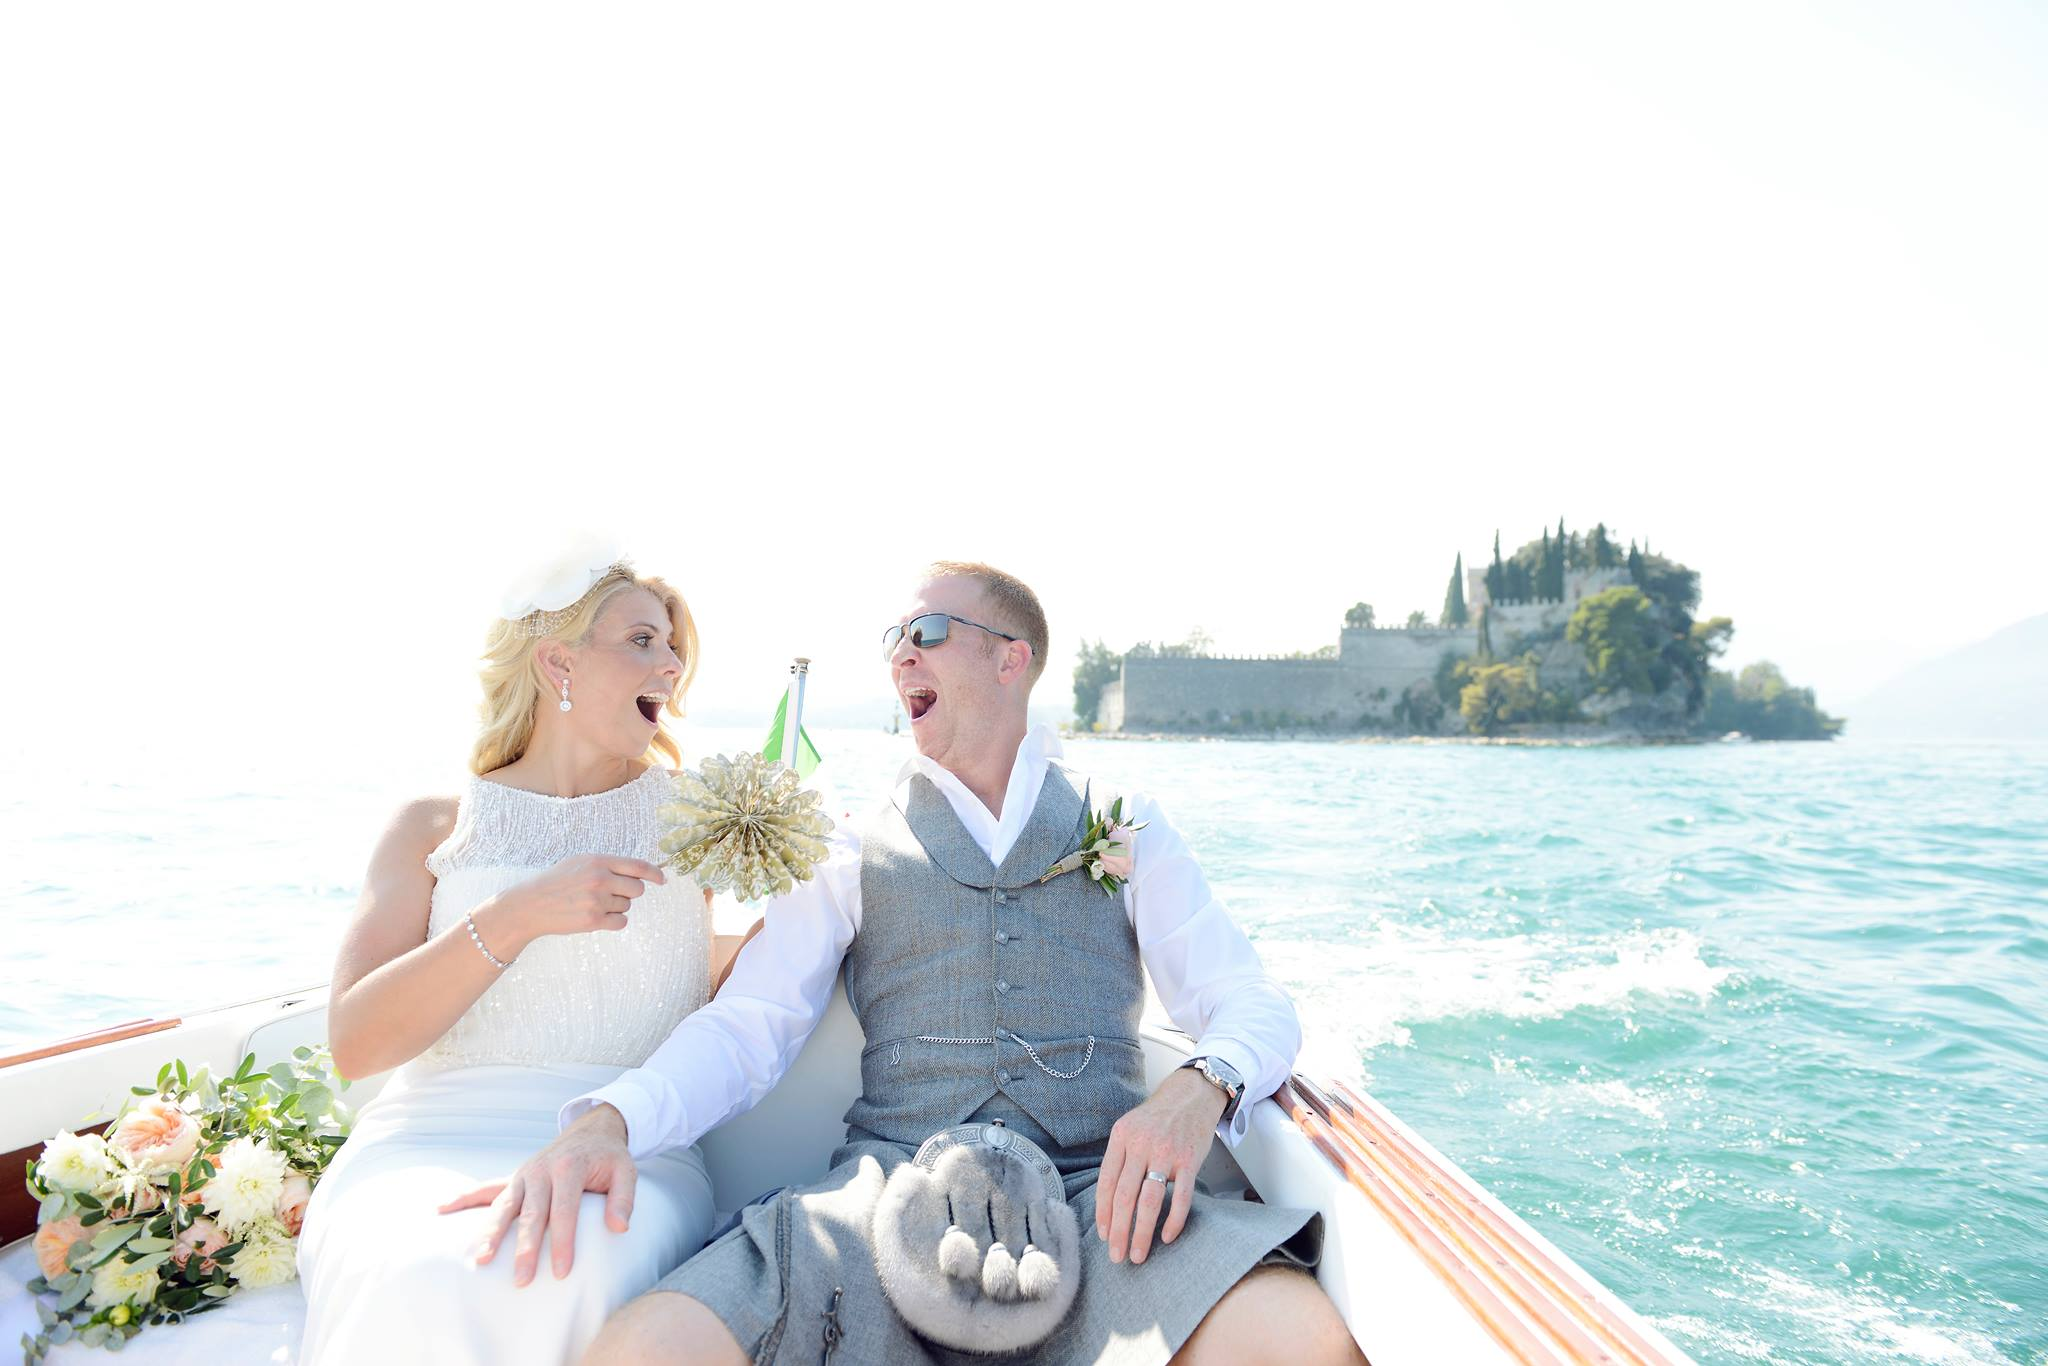 9-bride-and-groom-wedding-at-lake-garda-matrimonio-sul-lago-di-garda